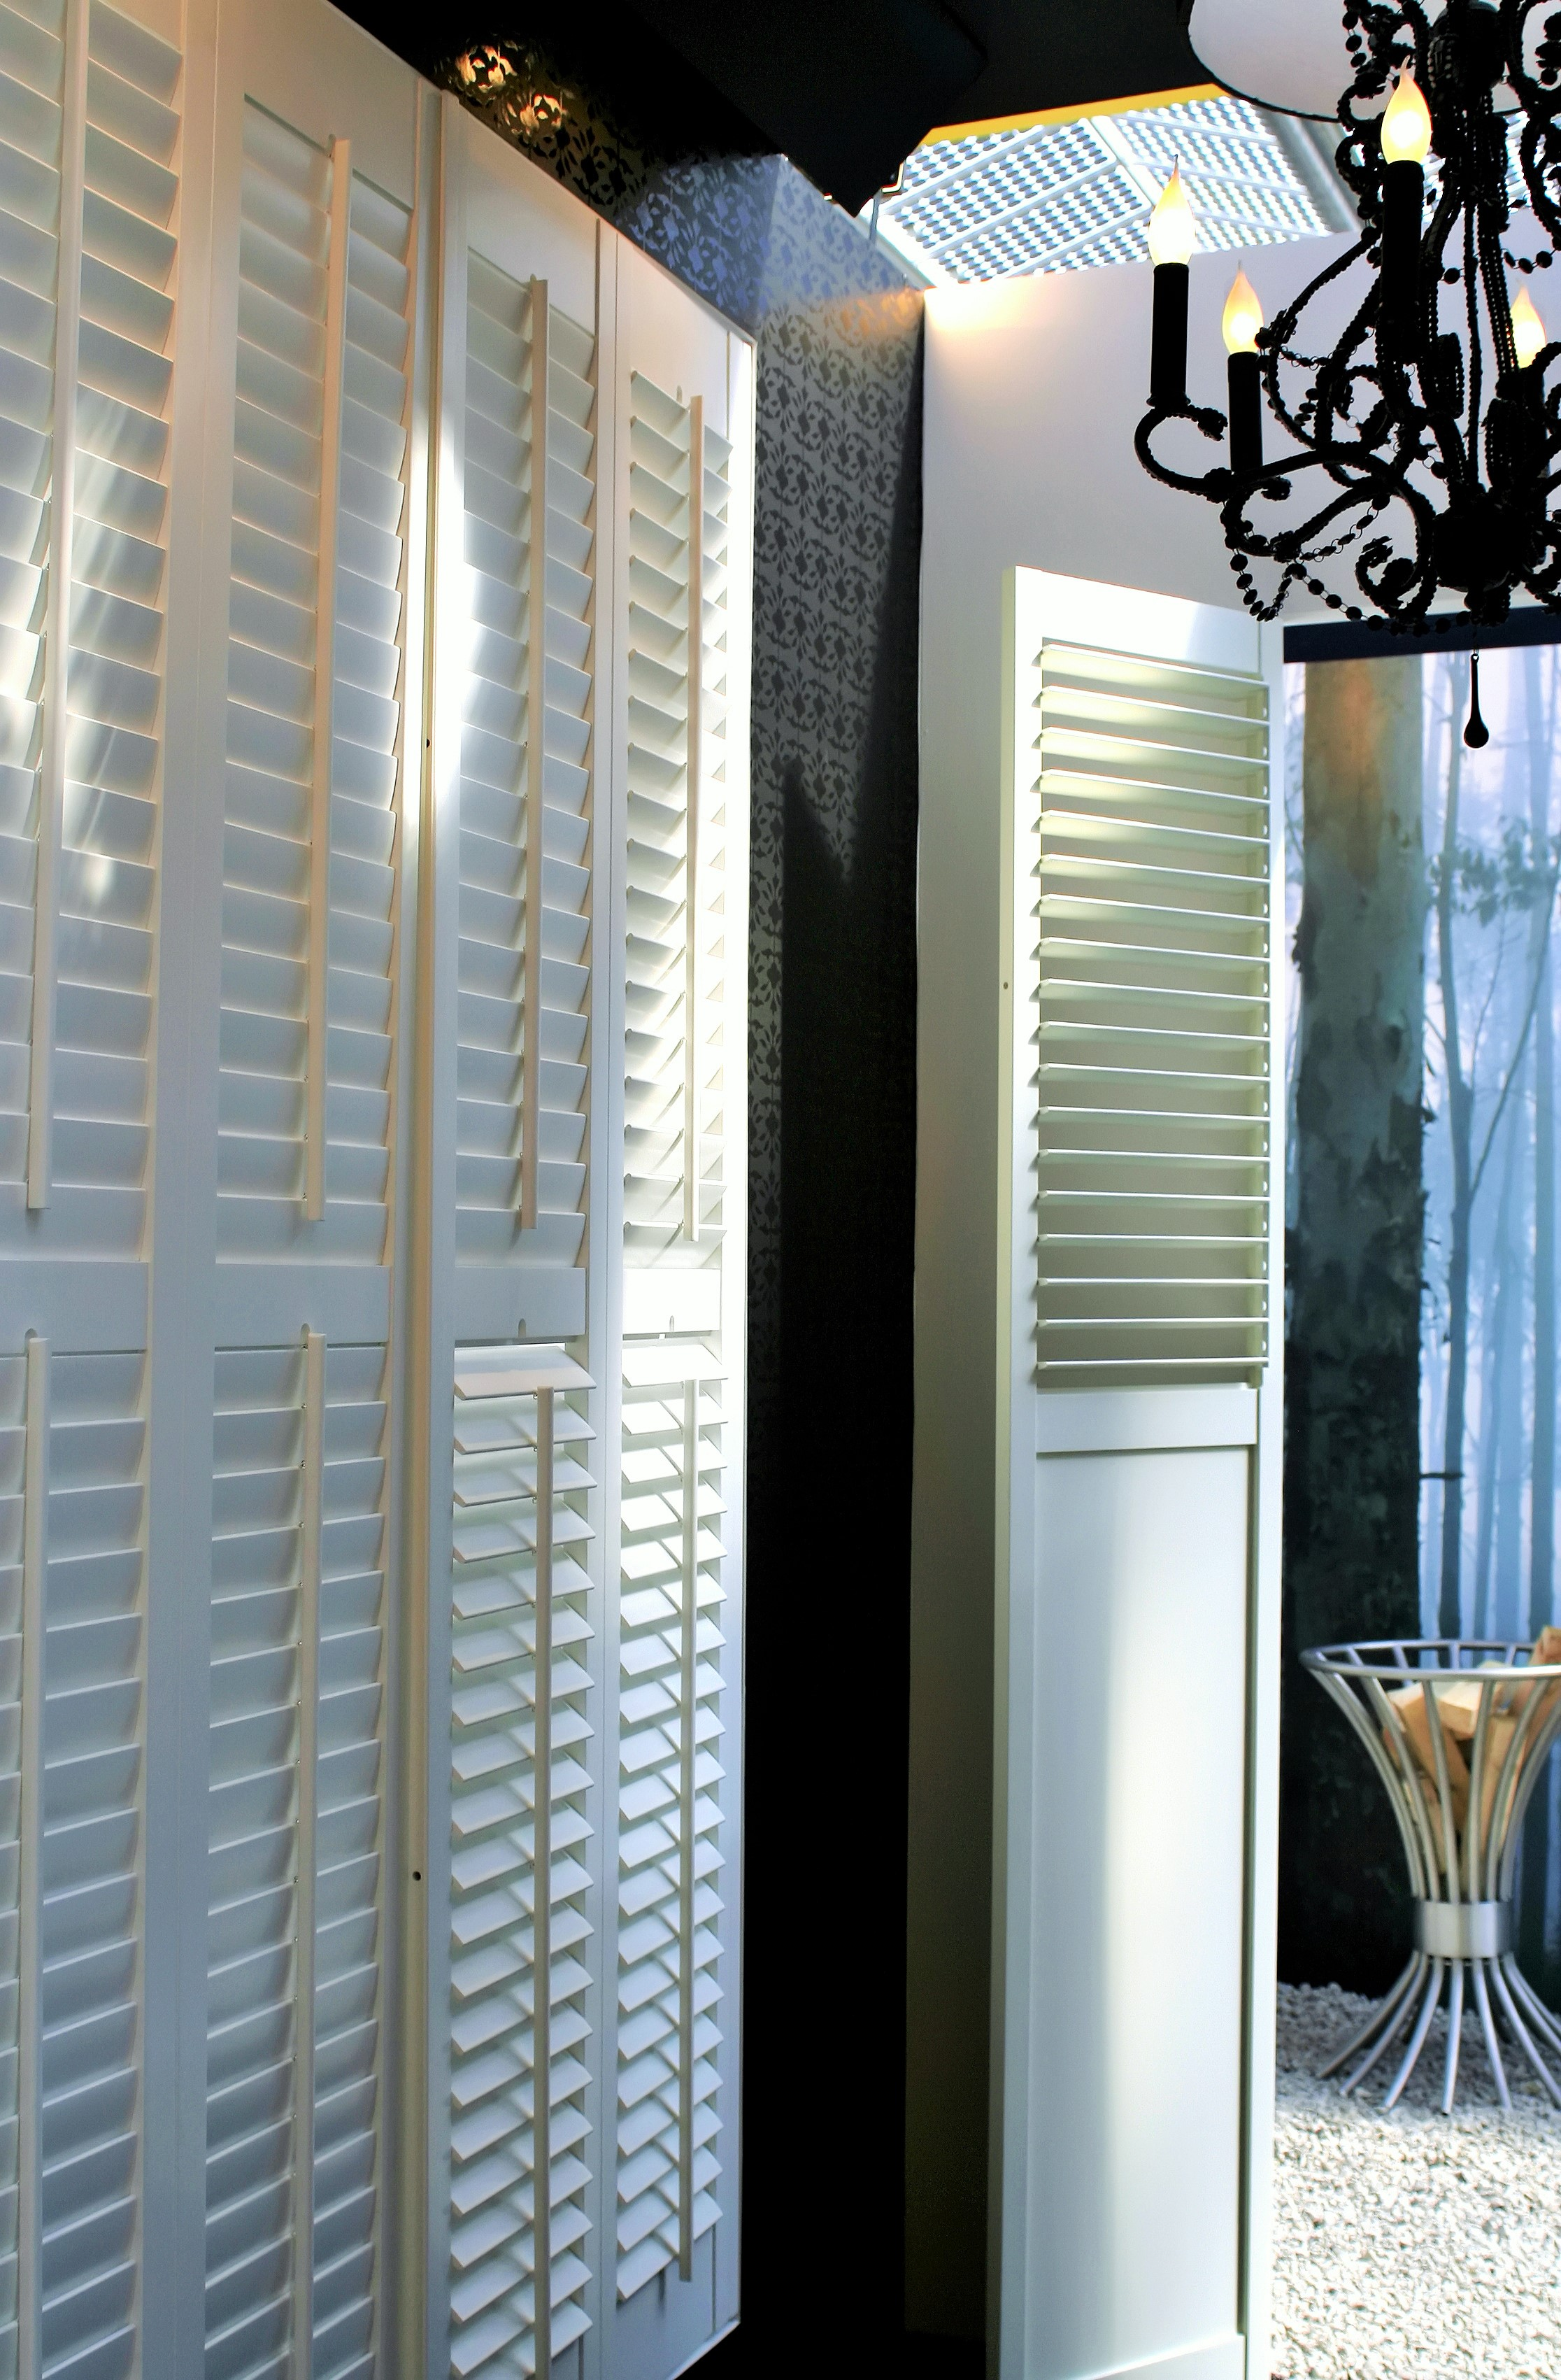 White shutters in interior space